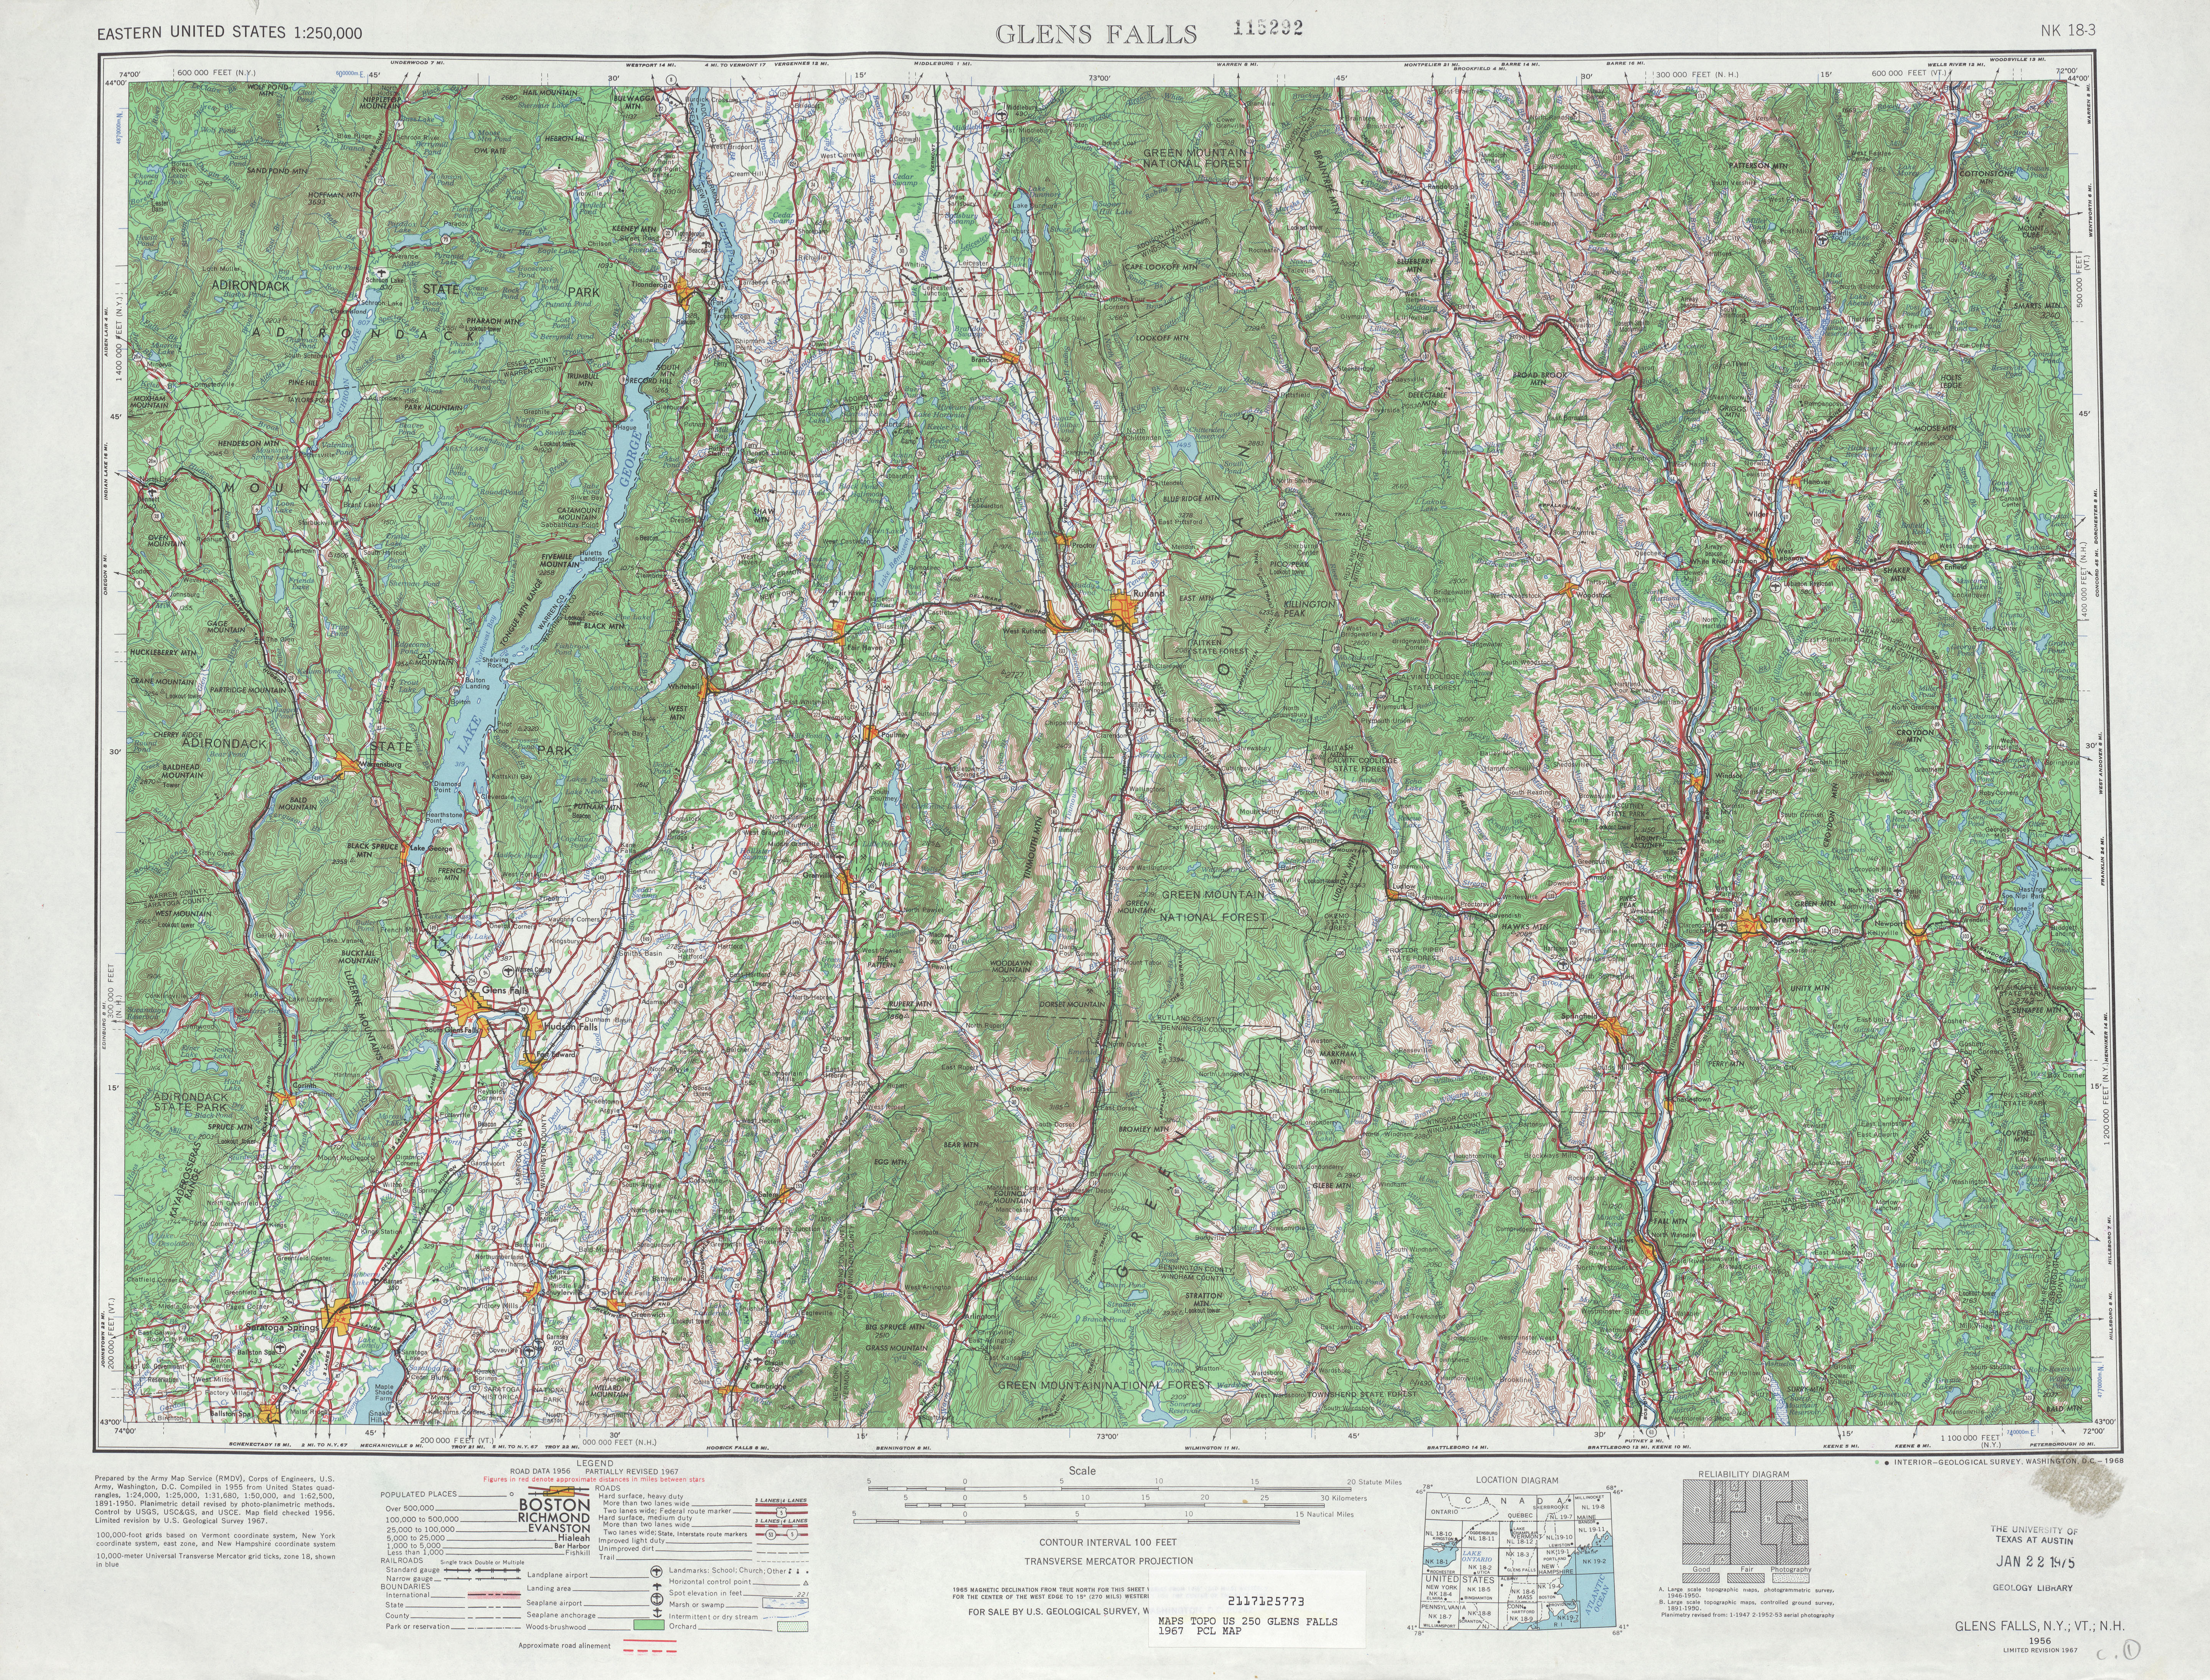 Glens Falls Topographic Map Sheet, United States 1967